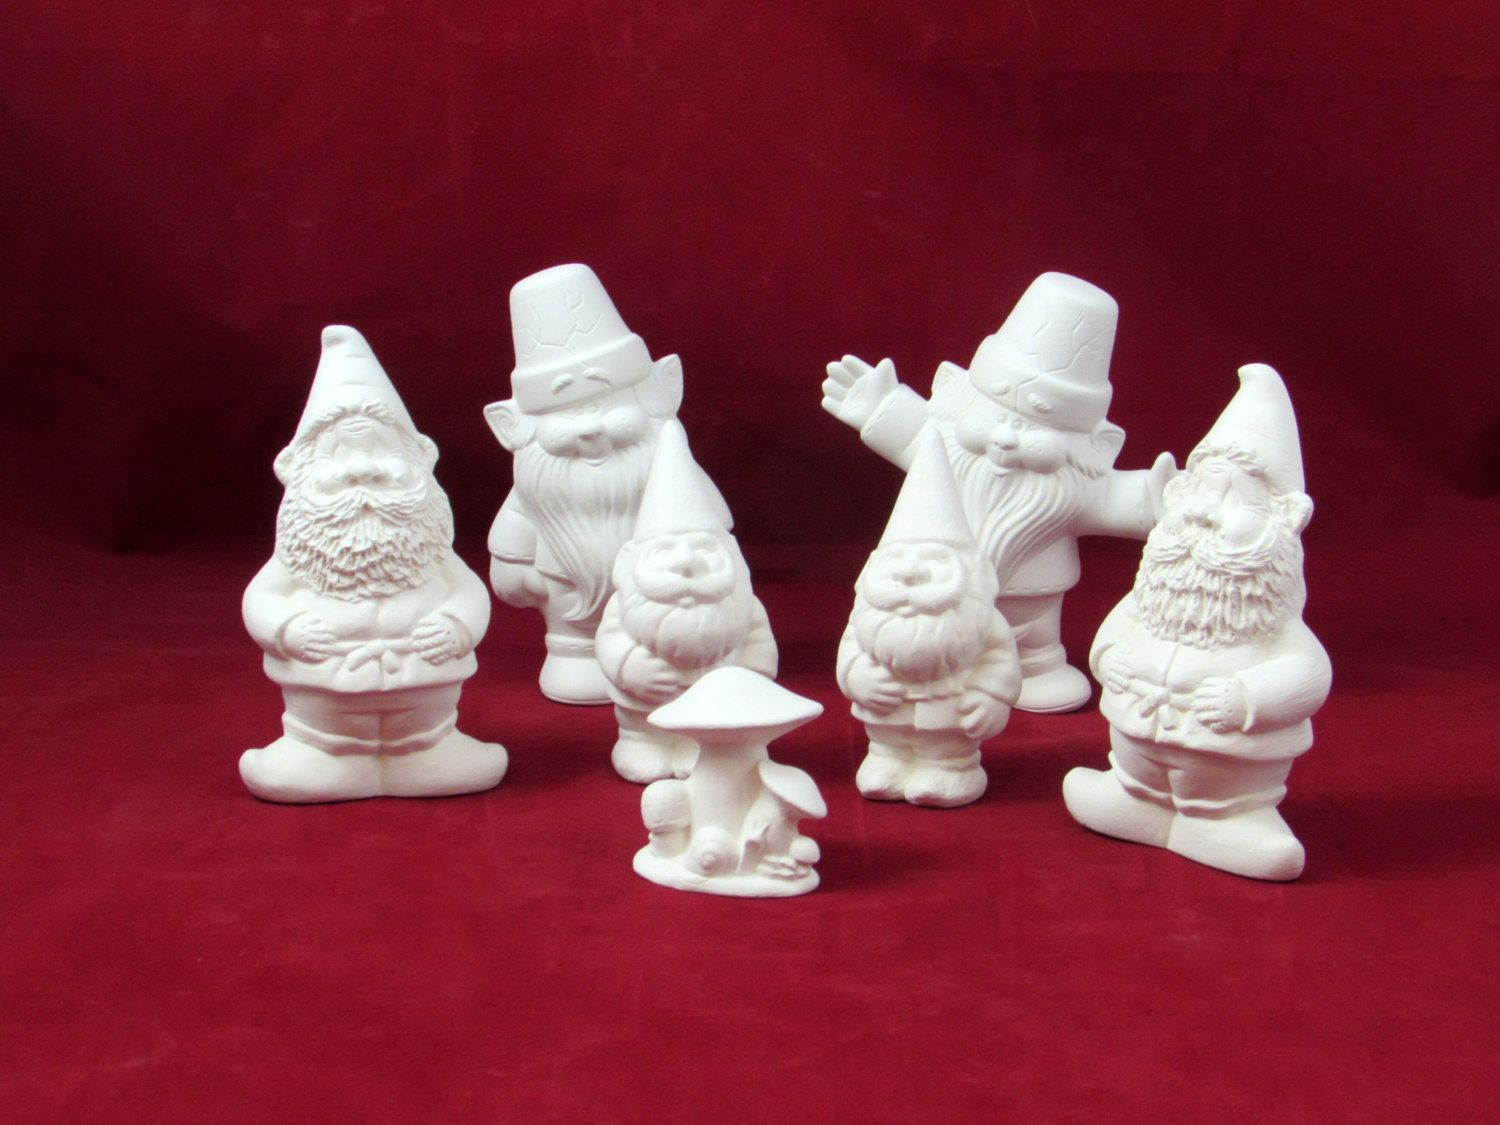 Gnome 4: Set Of Six Ready To Paint Small Male Ceramic Garden Gnomes